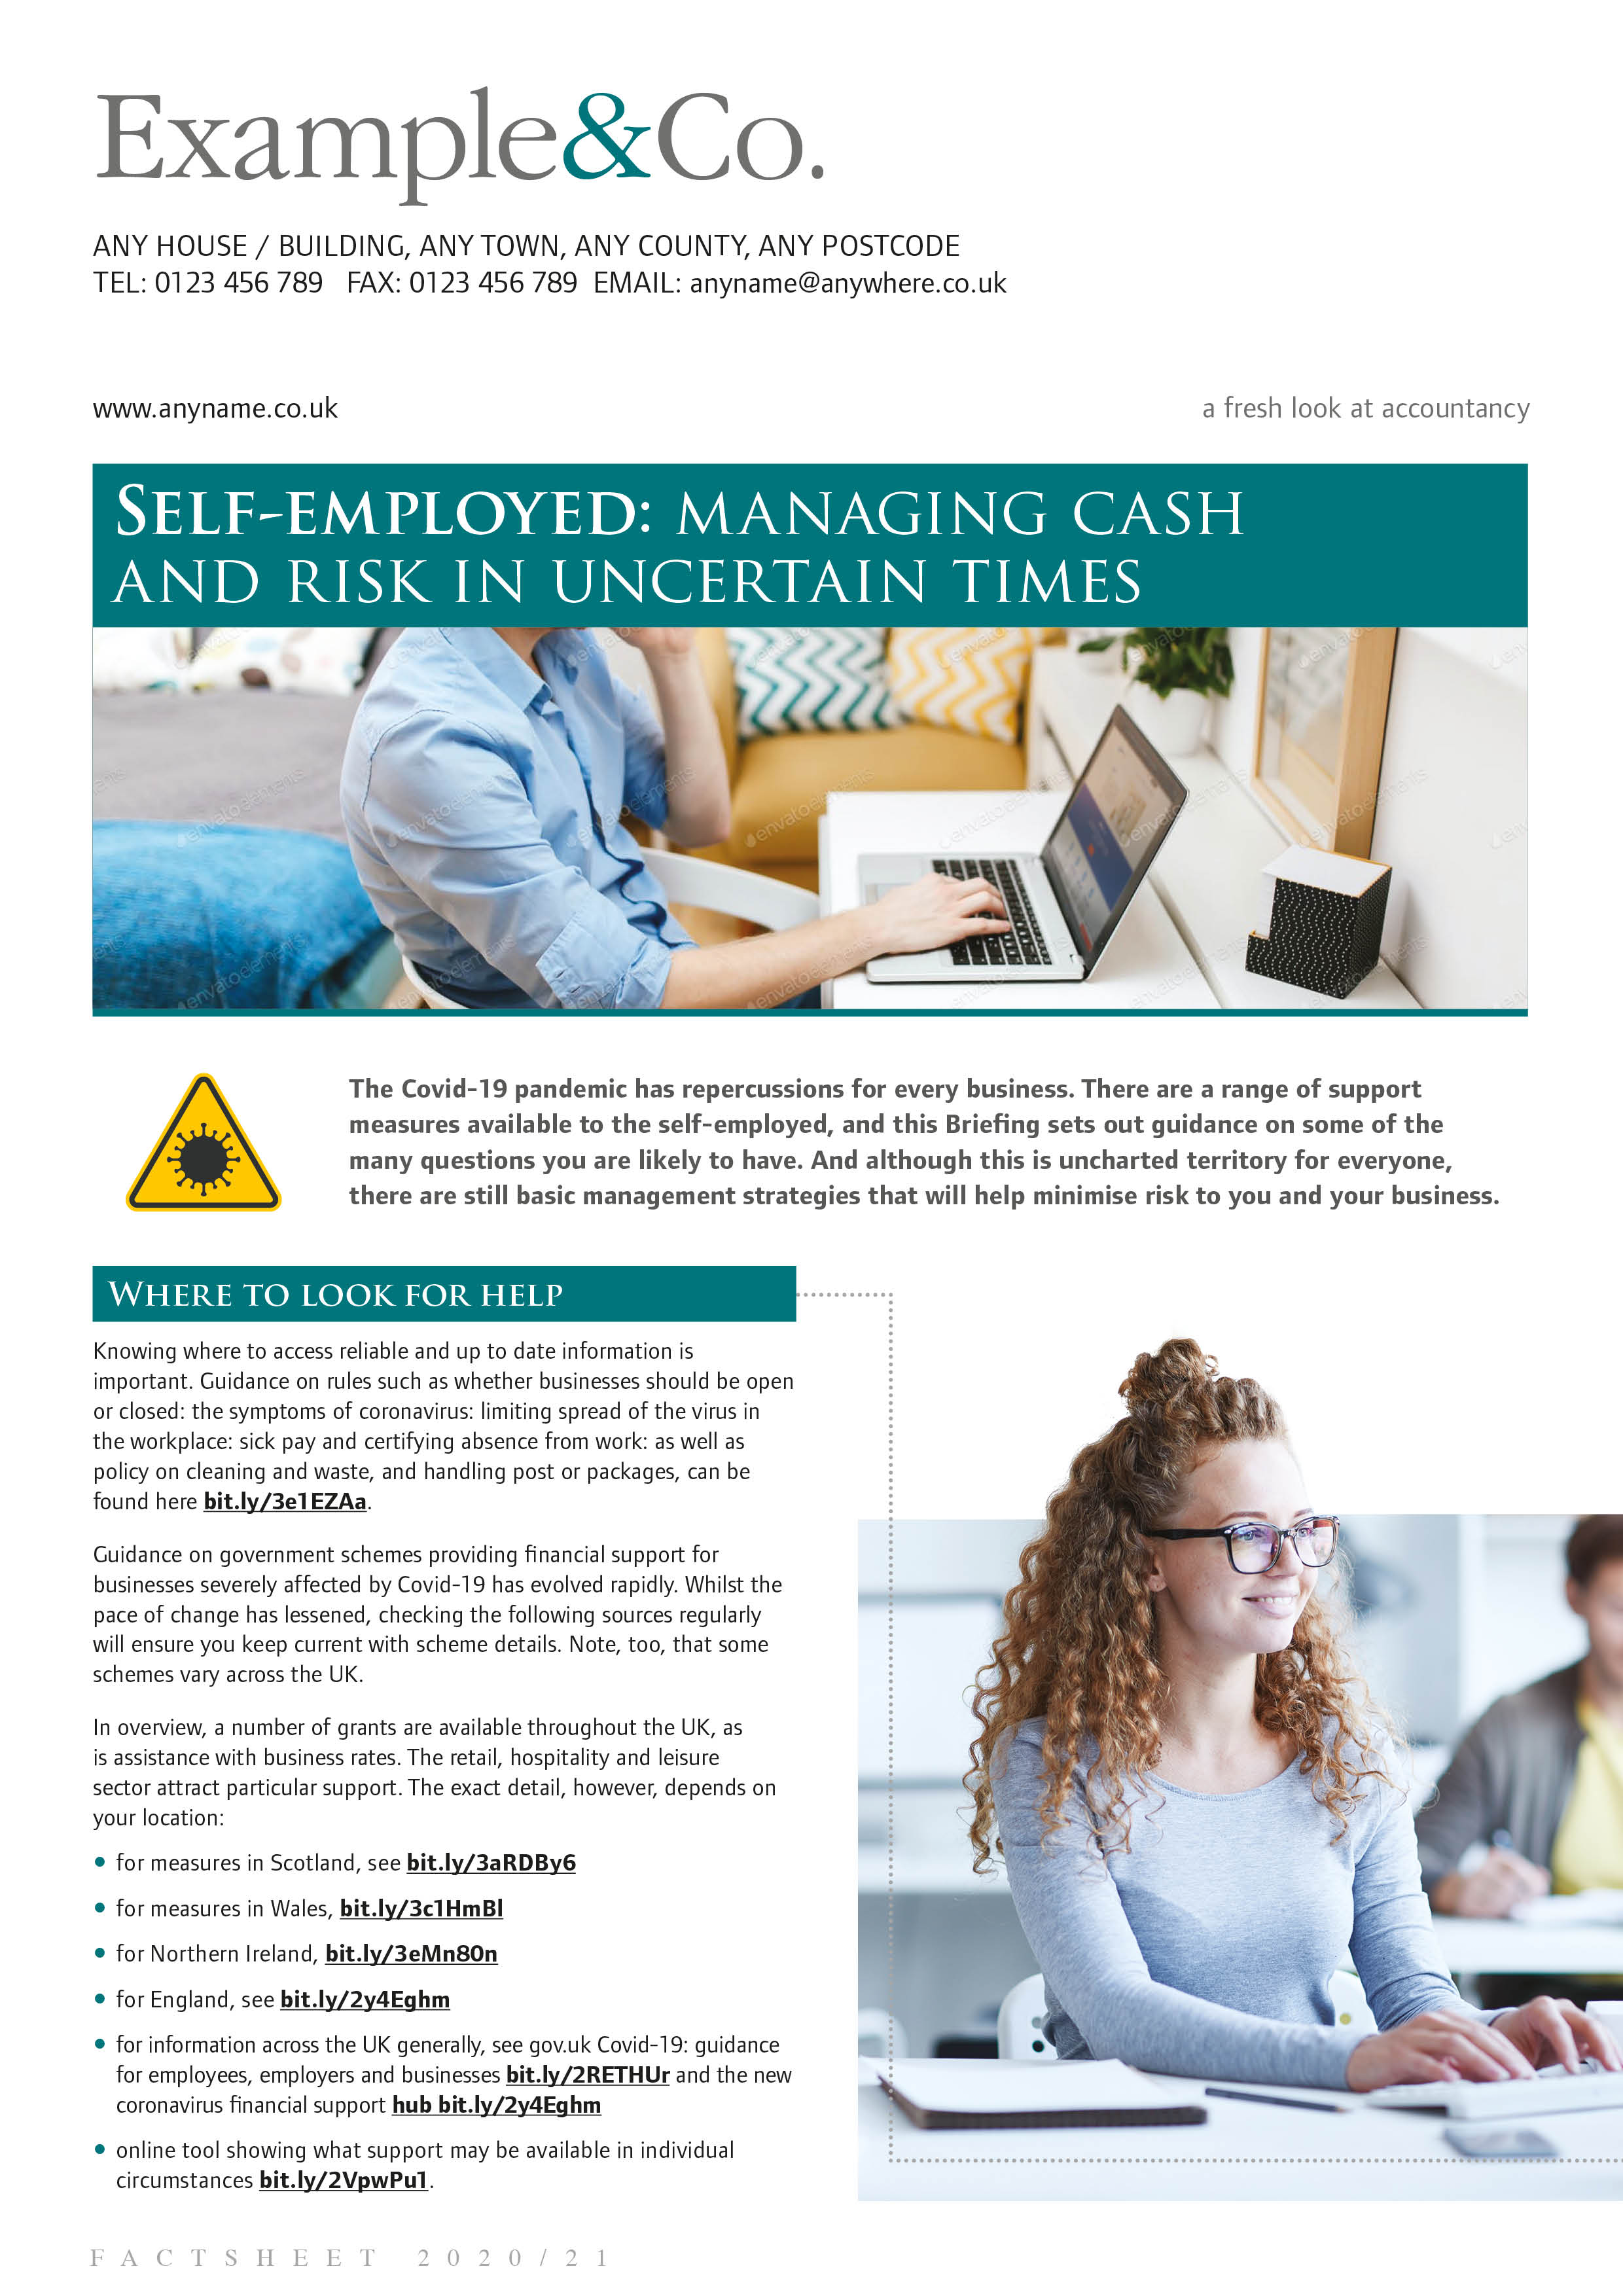 Self-employed: managing cash and risk in uncertain times